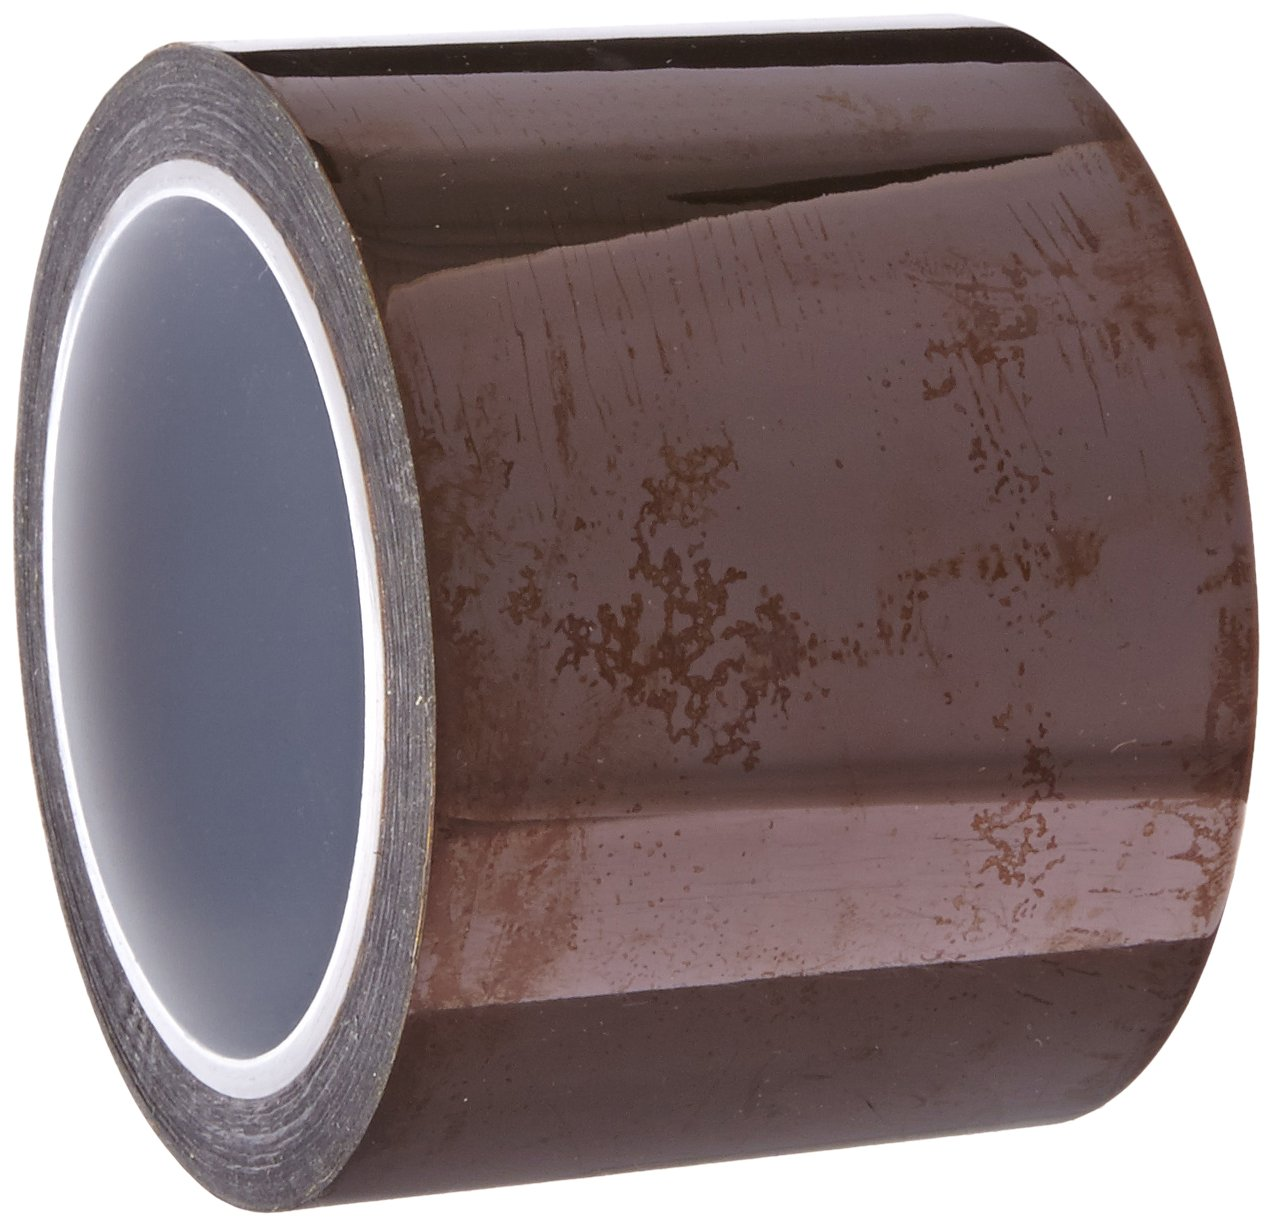 CS Hyde Kapton with Silicone Adhesive 3 Width x 36 Yard Roll 3 Width x 36 Yard Roll 18-2S-3-36 2 mil Thick Amber